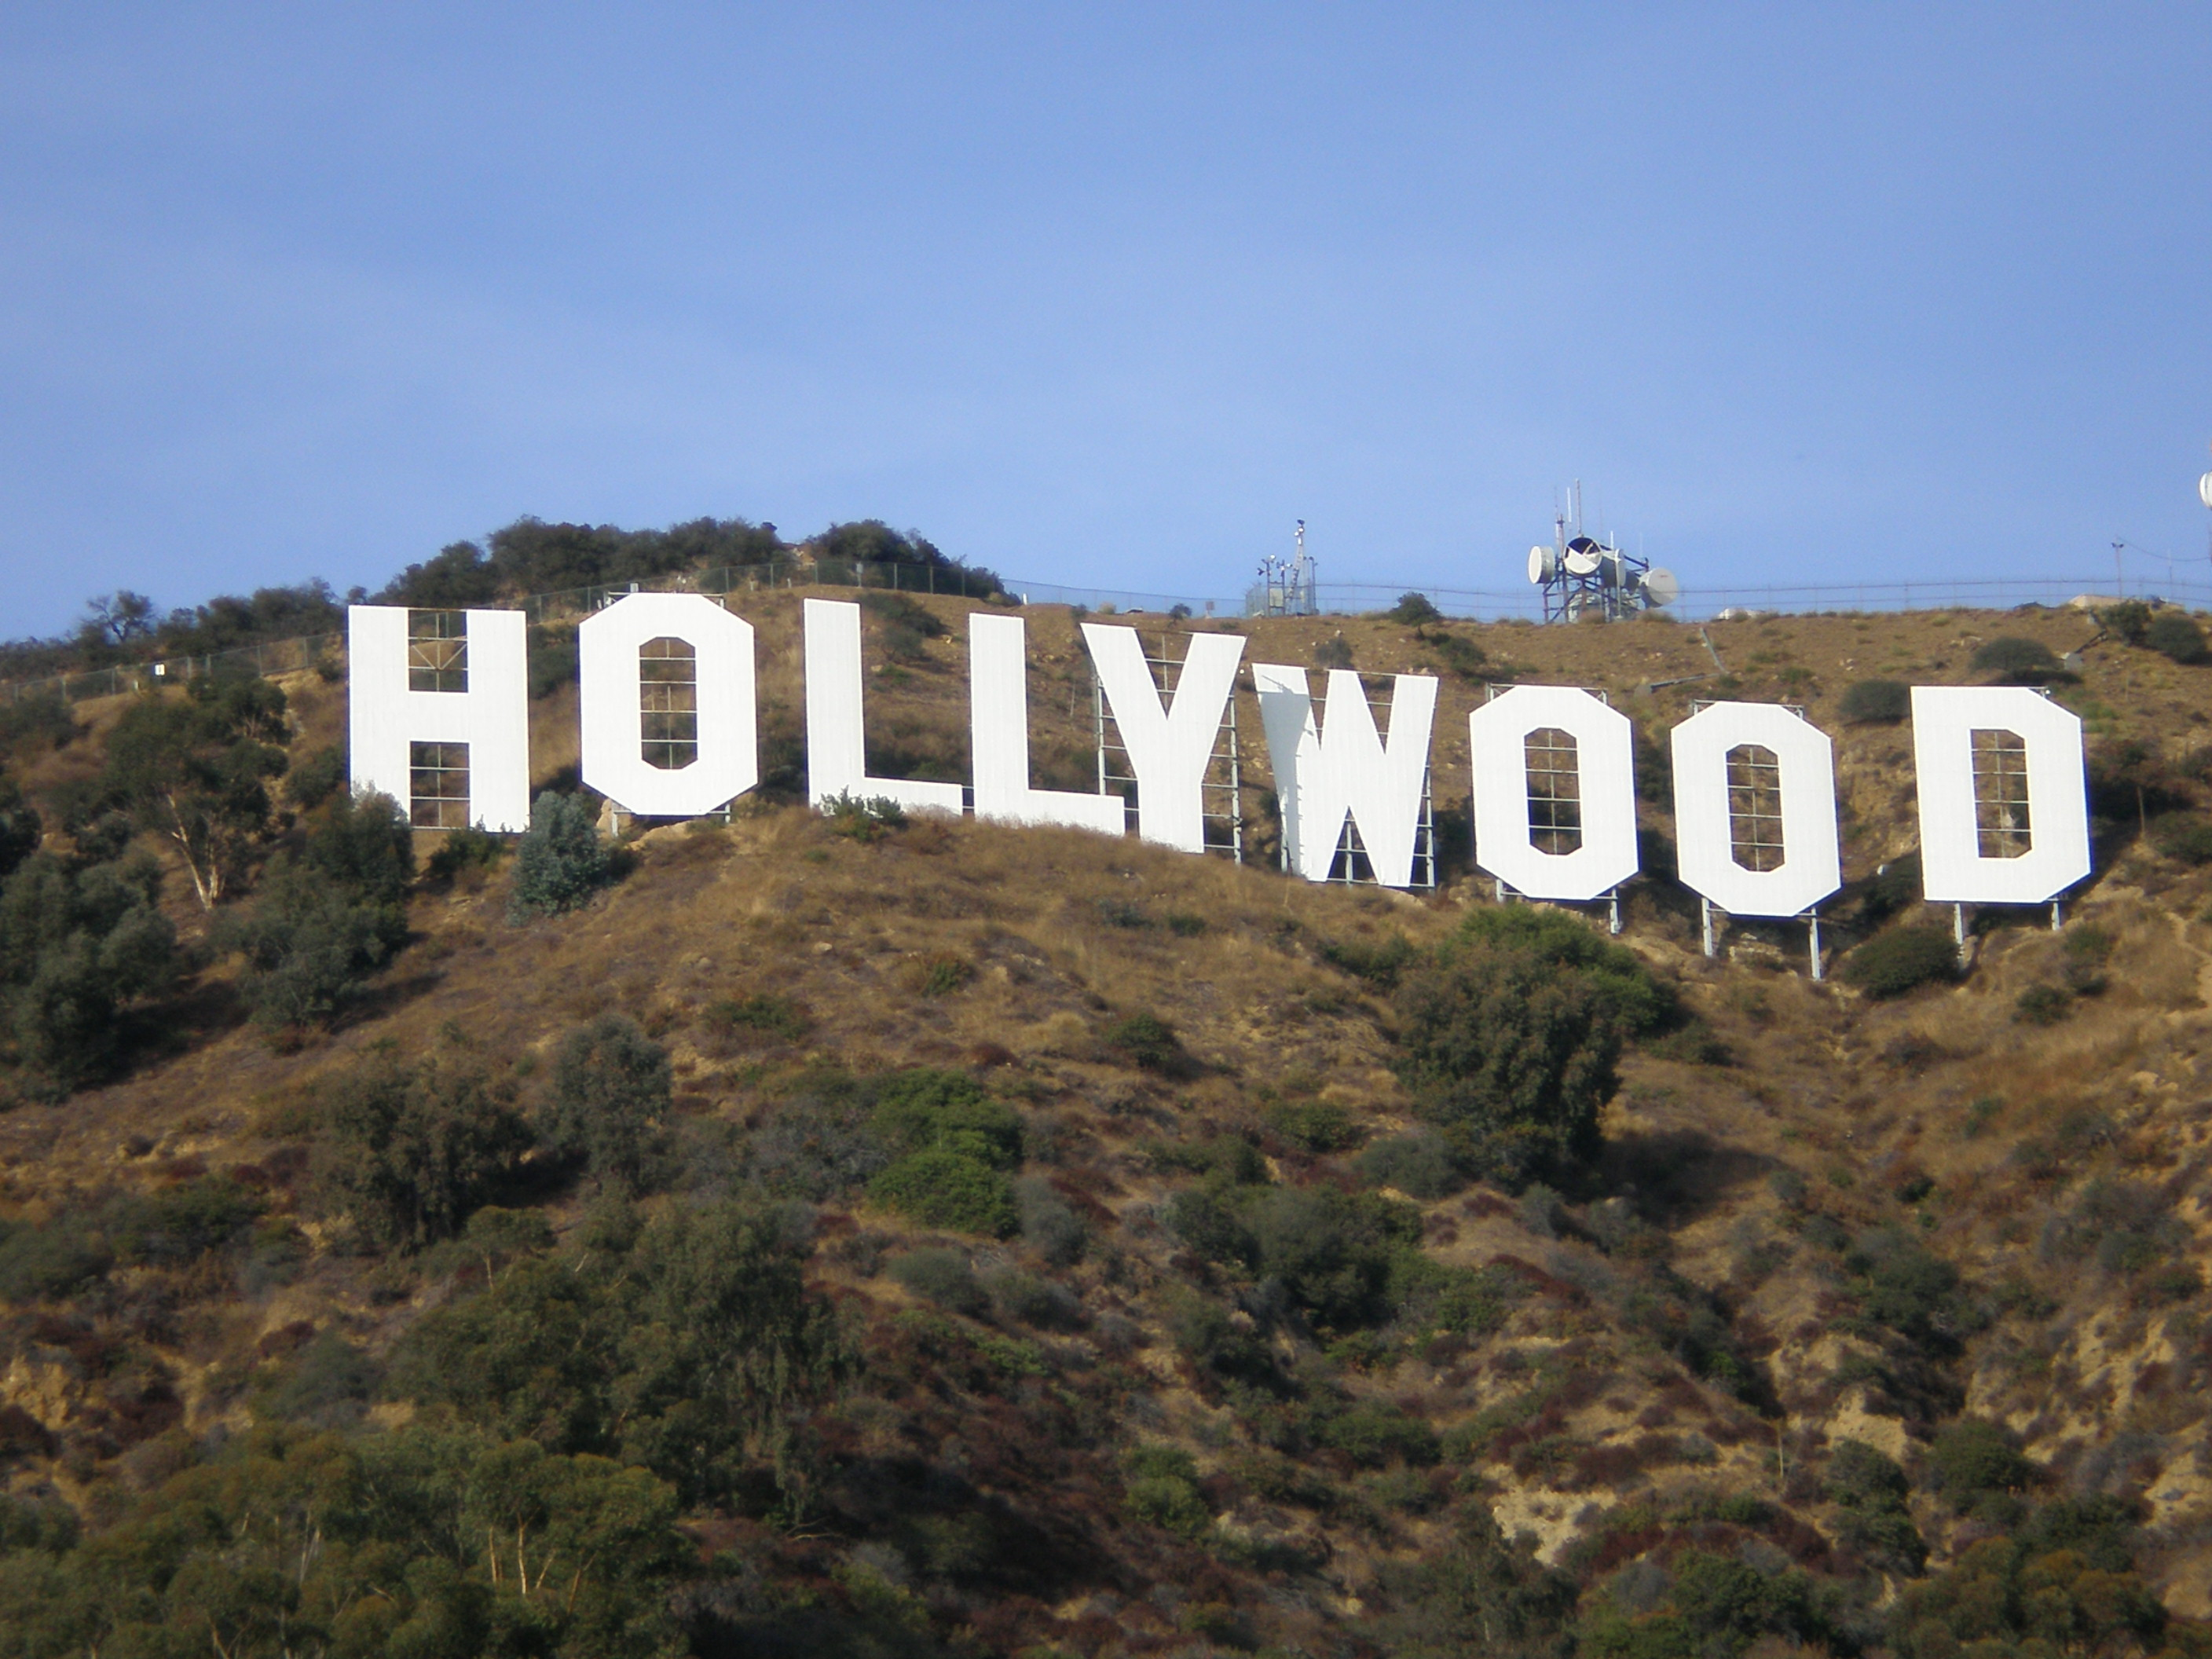 File:Hollywood Sign PB050006.jpg - Wikipedia